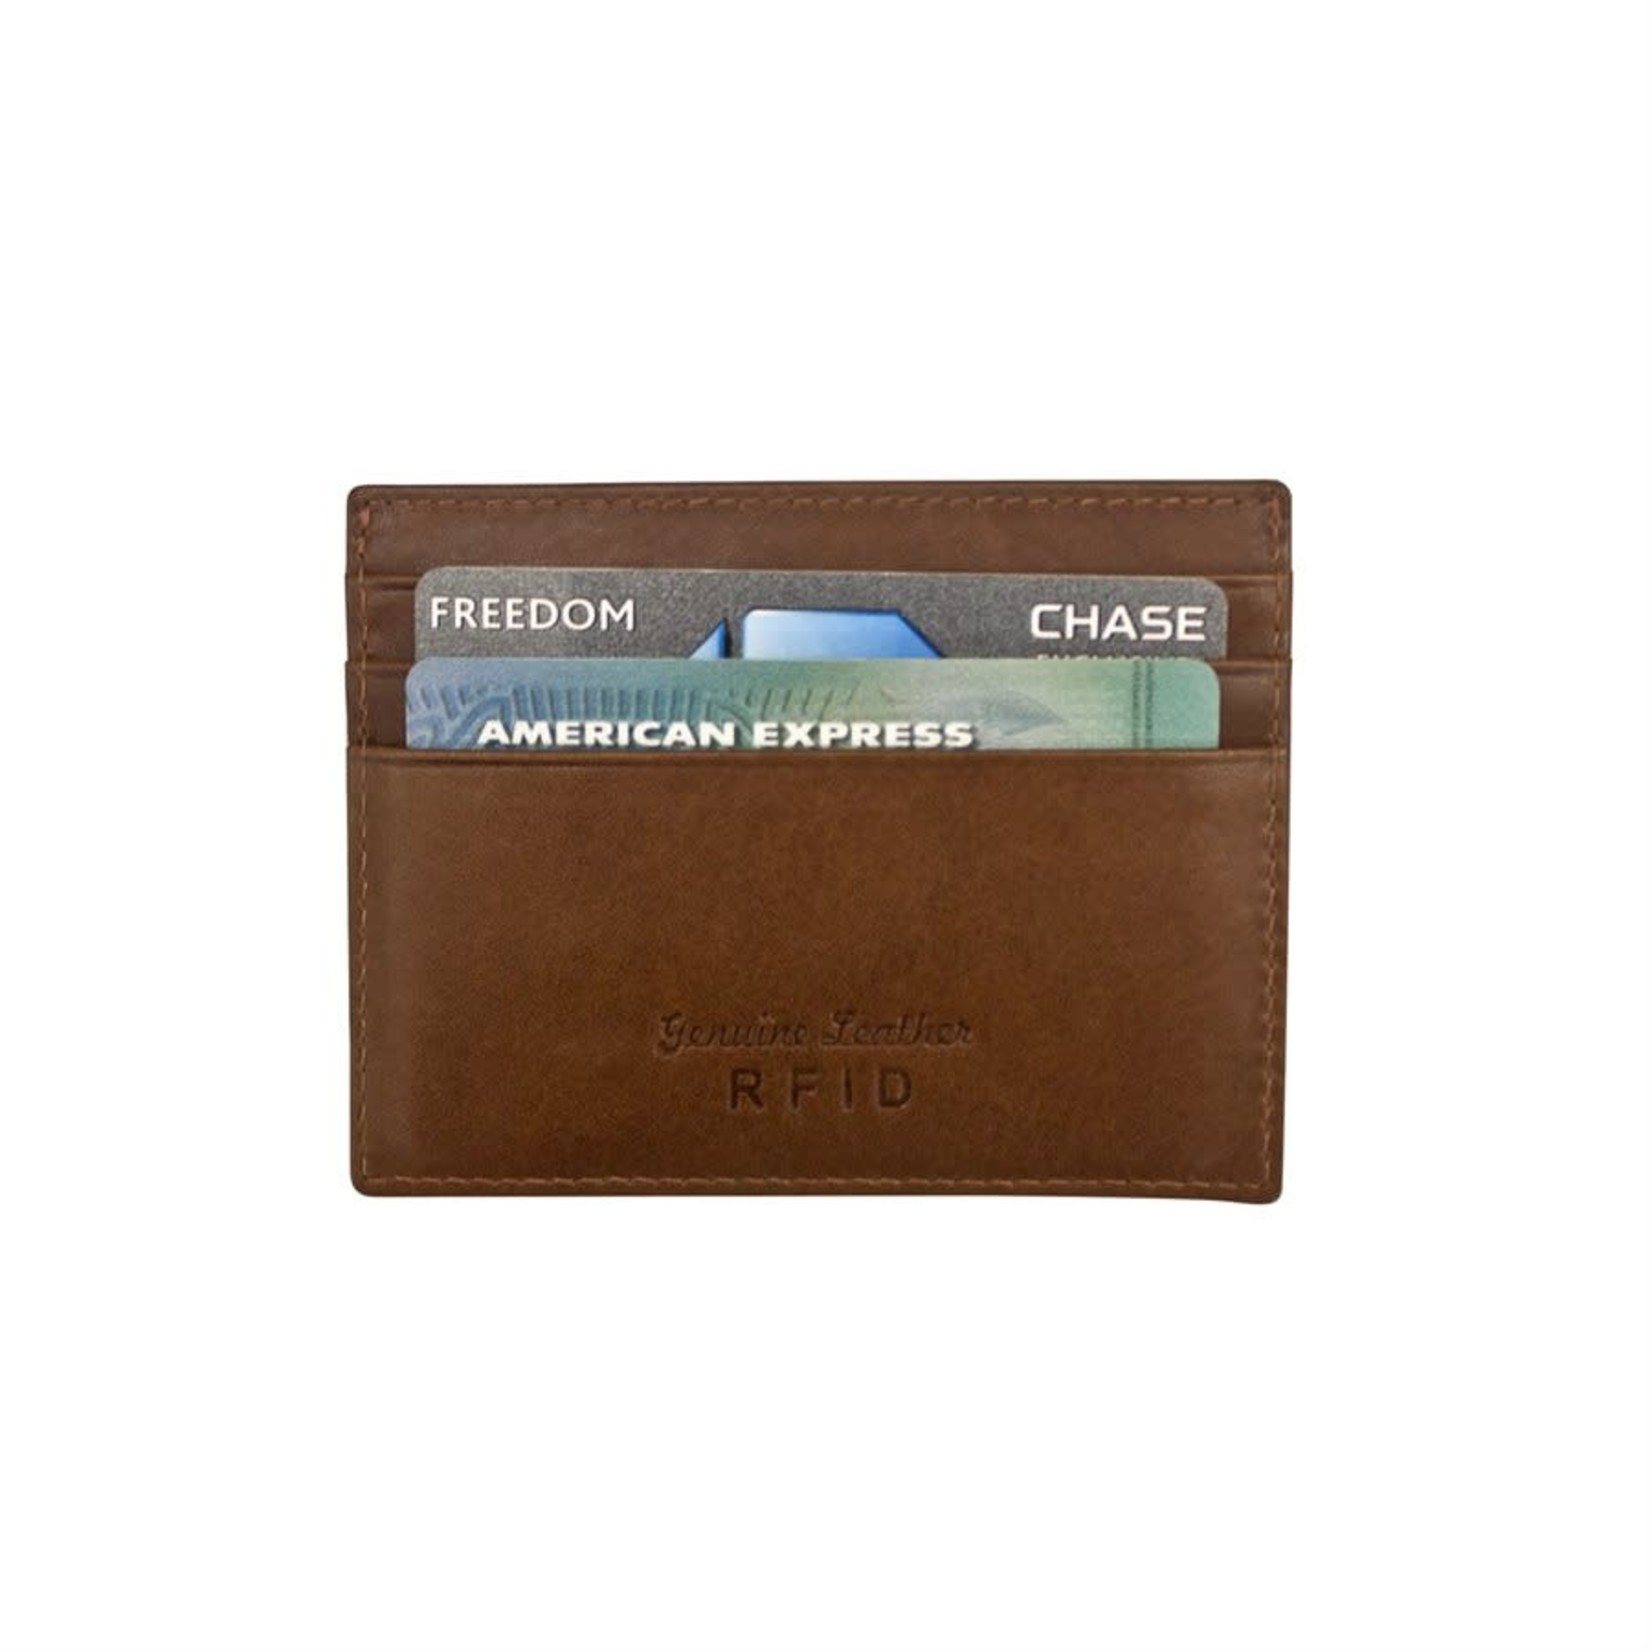 Leather Handbags and Accessories 7202 Toffee - RFID Mini Card Holder